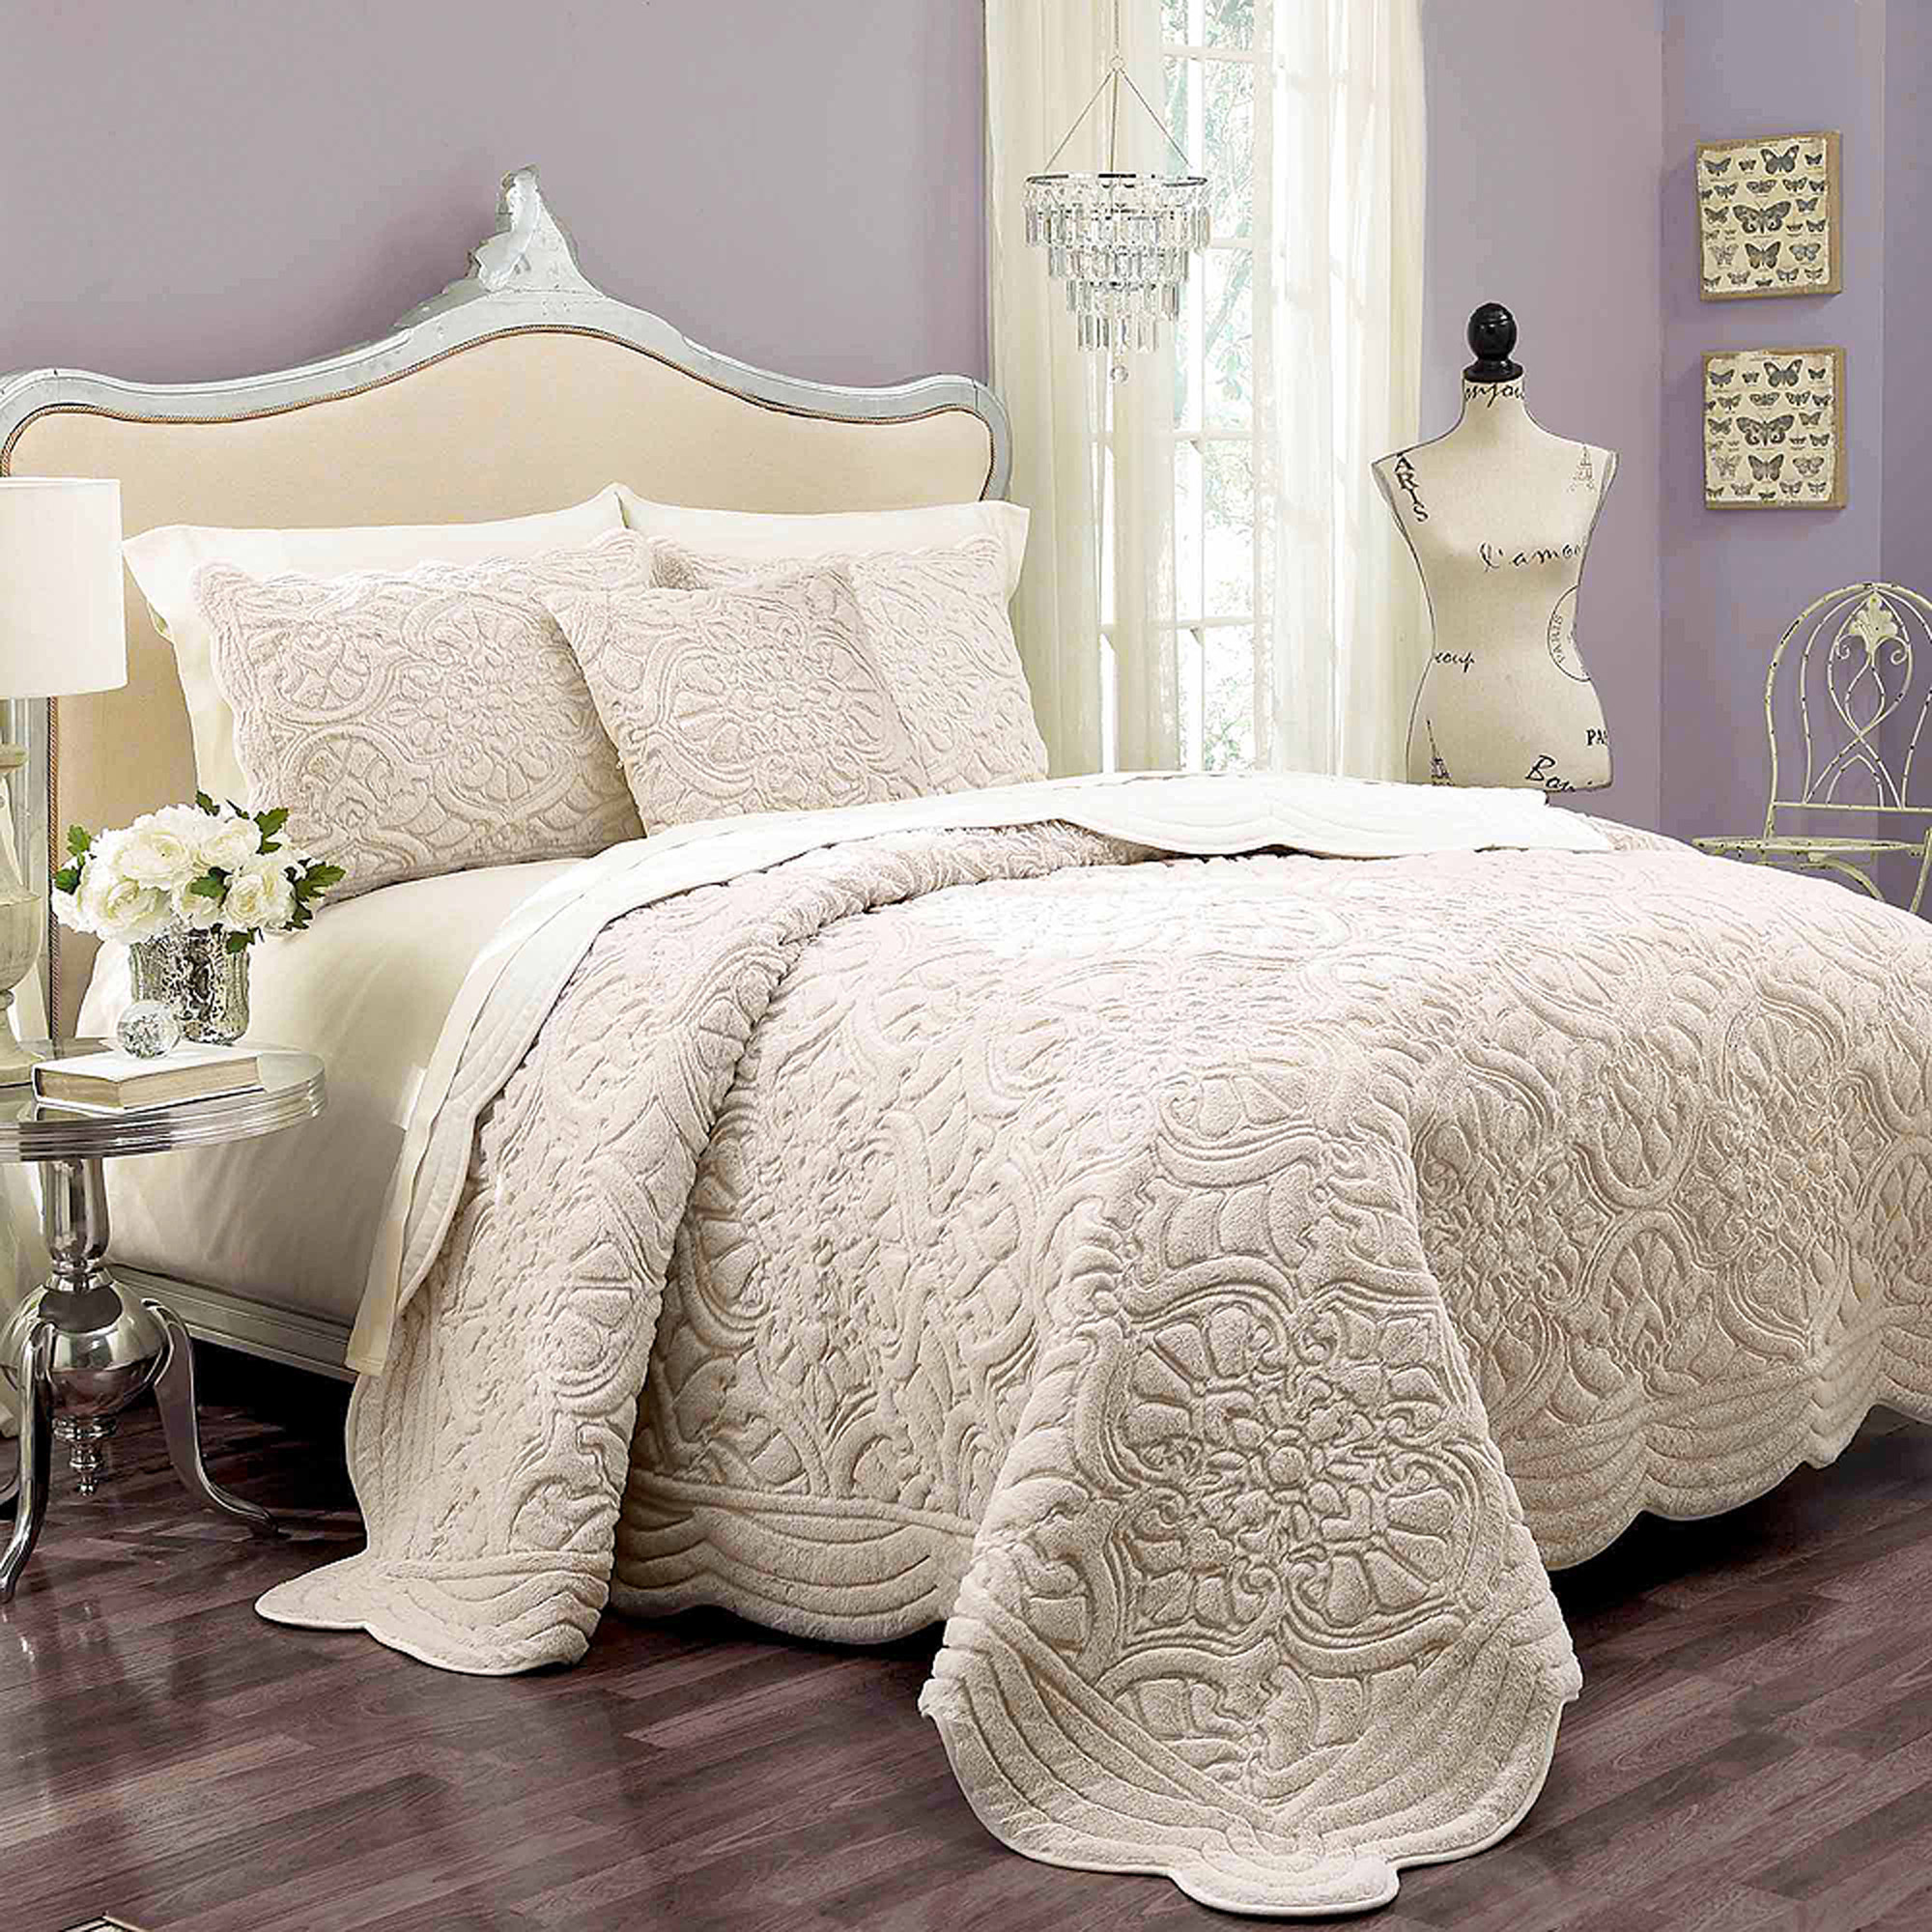 Vue Signature Plush Decor Charlotte Faux Fur Coverlet Collection by Overstock